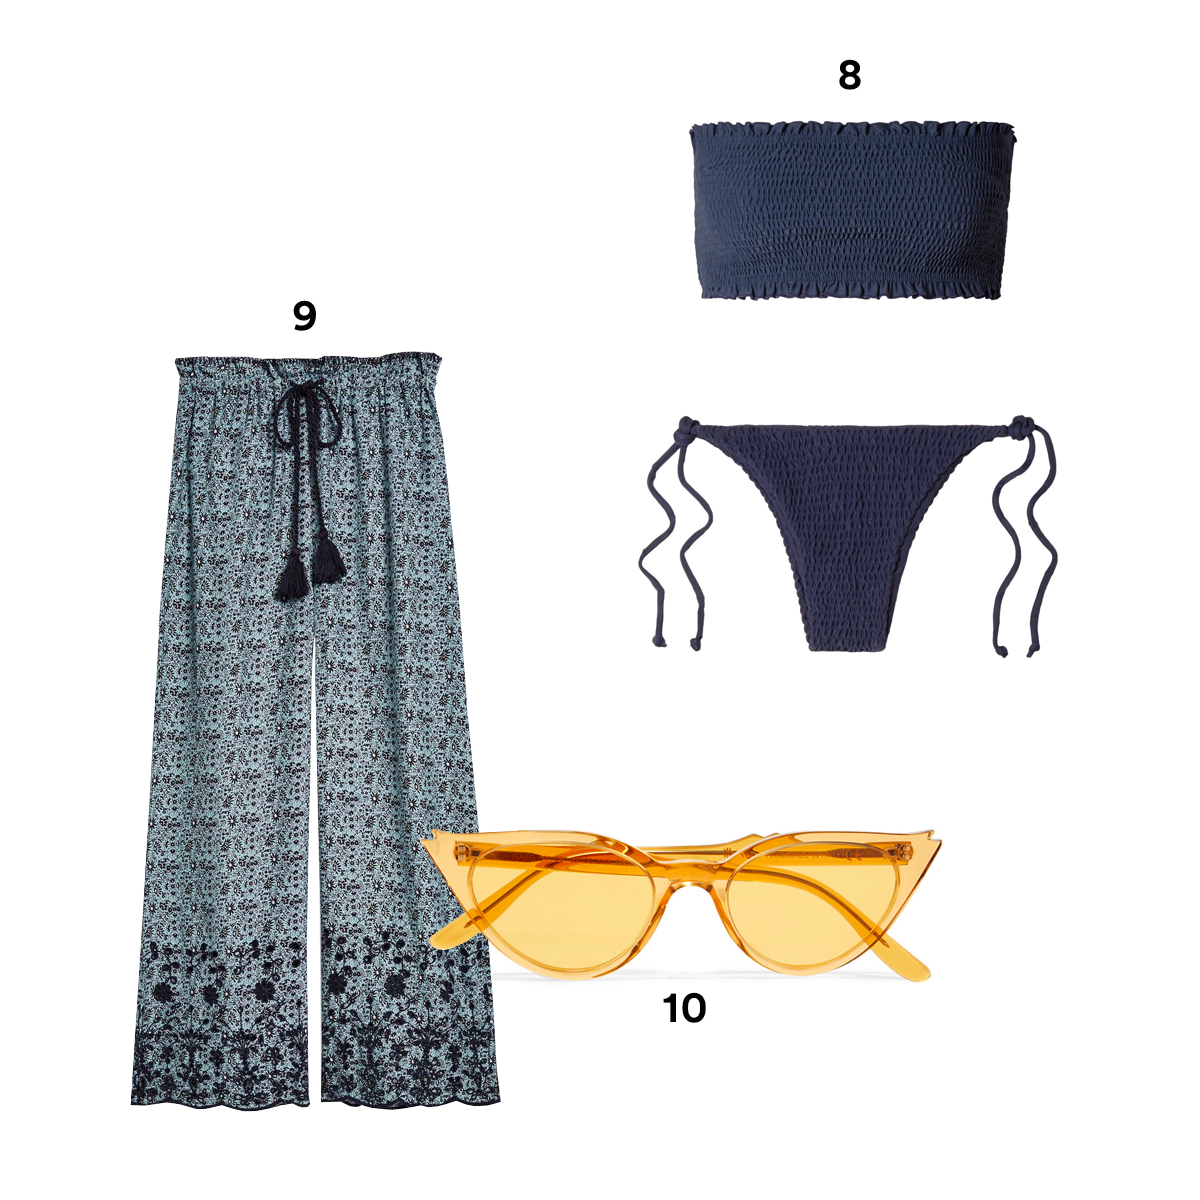 8.) FAITHFULL THE BRAND Behati and Candice Shirred Bandeau Bikini, available at Bloomingdales. 9.) TOPSHOP Ditsy Embroidered Tie Waist Culottes. 10.) ILLESTEVA Isabella Cat-Eye acetate Sunglasses, available at Barneys New York.